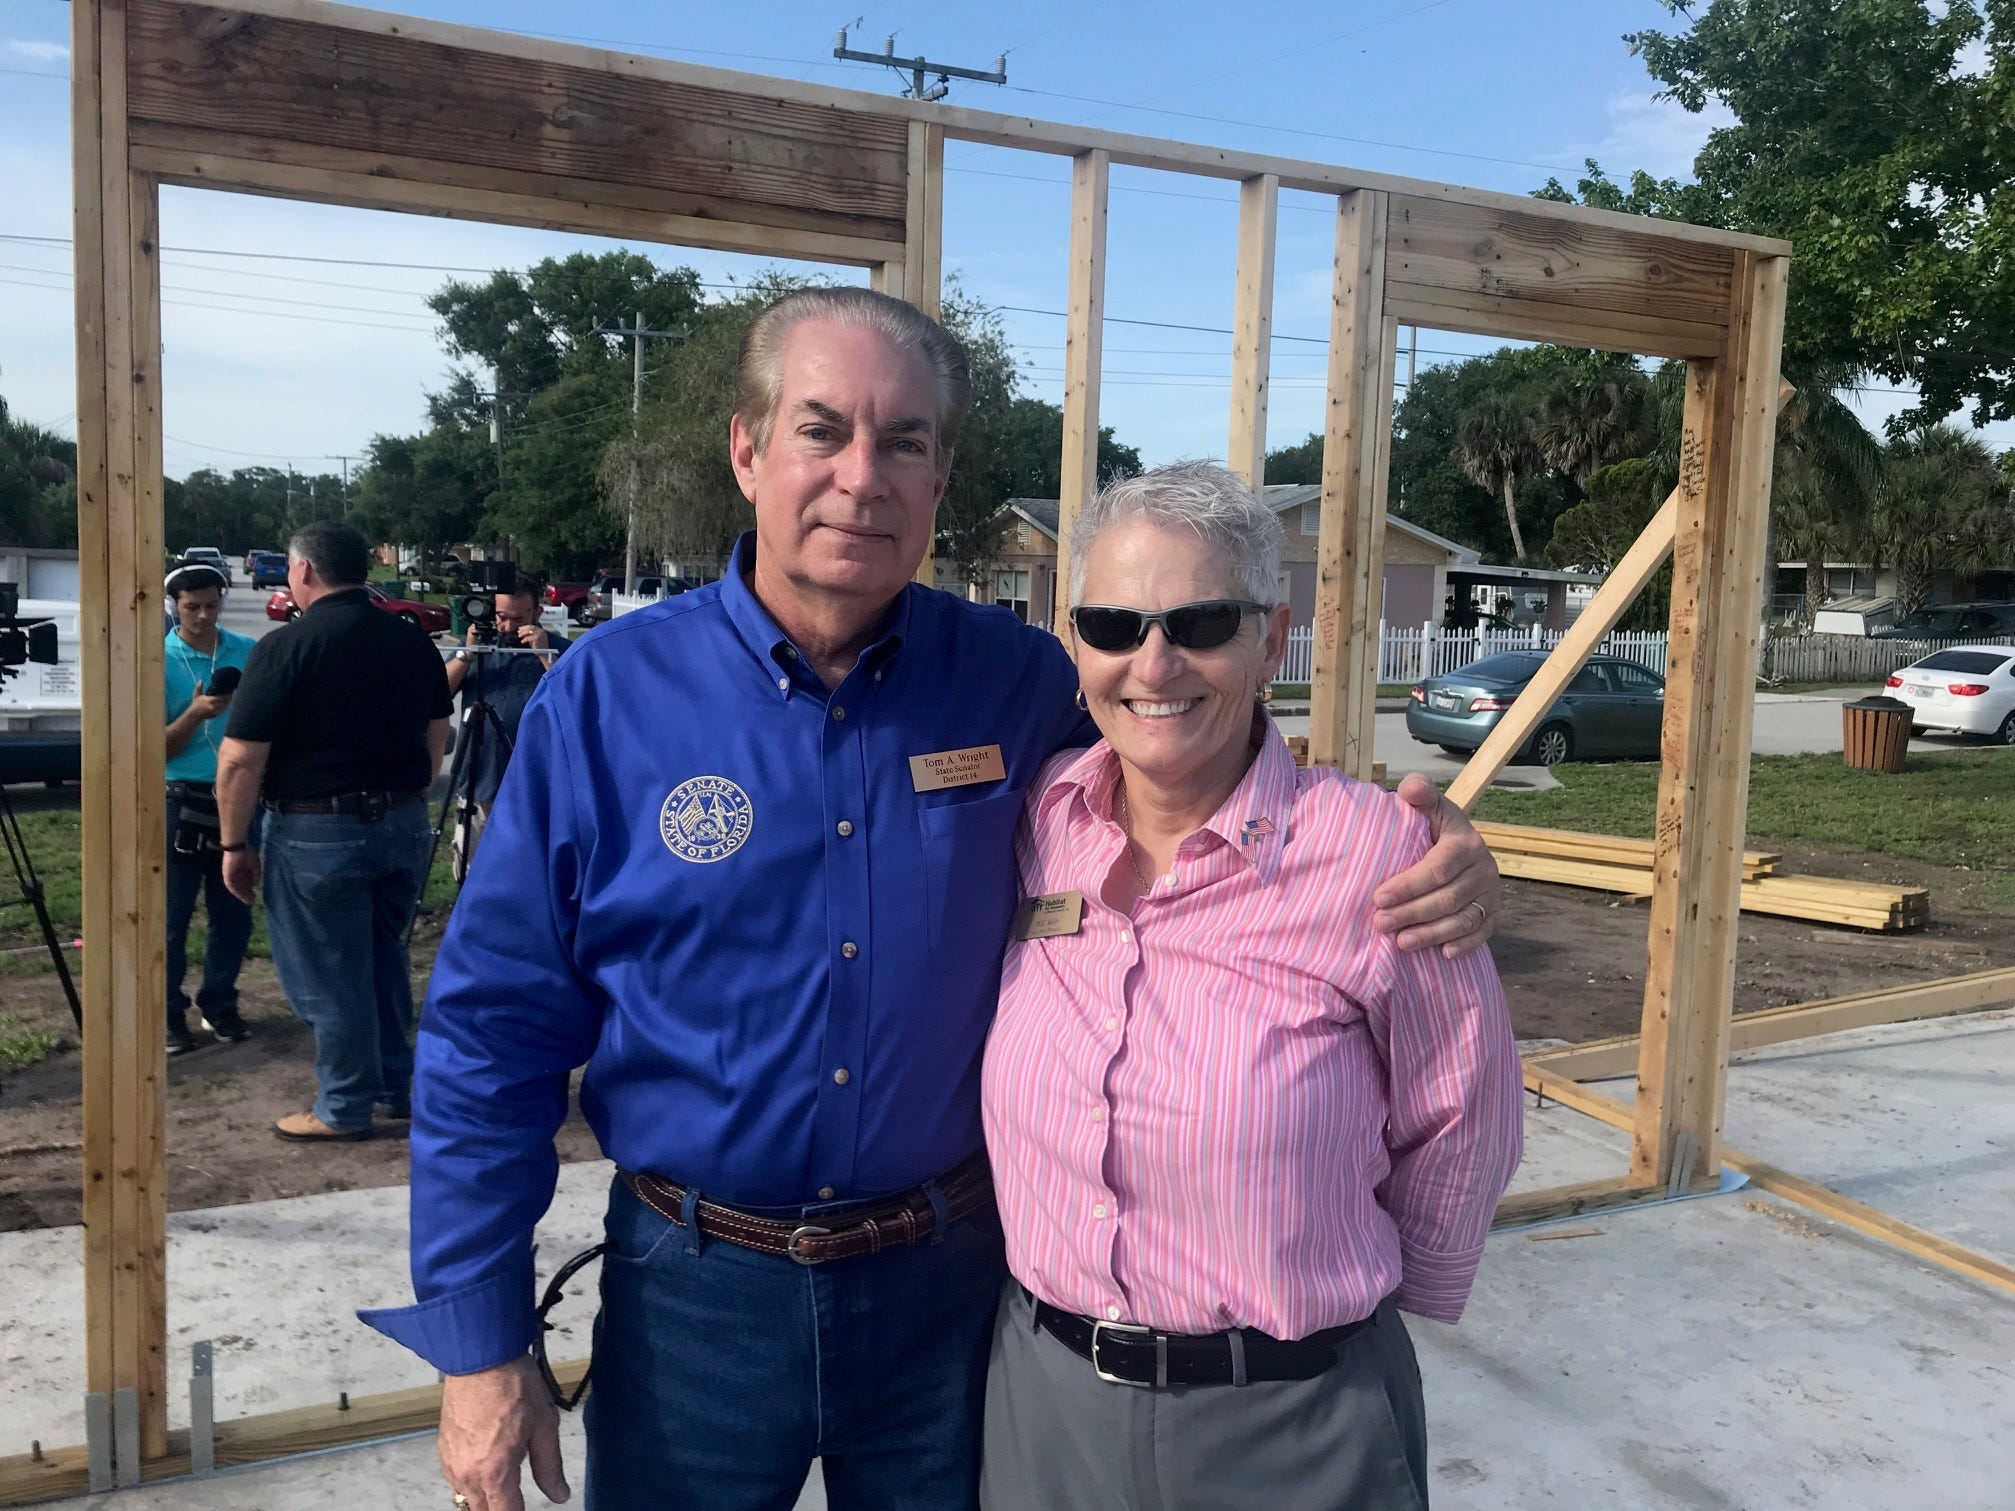 State Sen Tom Wright and Mary Kelly, executive director of Habitat for Humanity of Brevard, pose for a photo after walls were raised Monday morning on the first of six homes for female veterans to be built in Cocoa by Habitat for Humanity of Brevard. This home will go to Army veteran Karla Griggs.